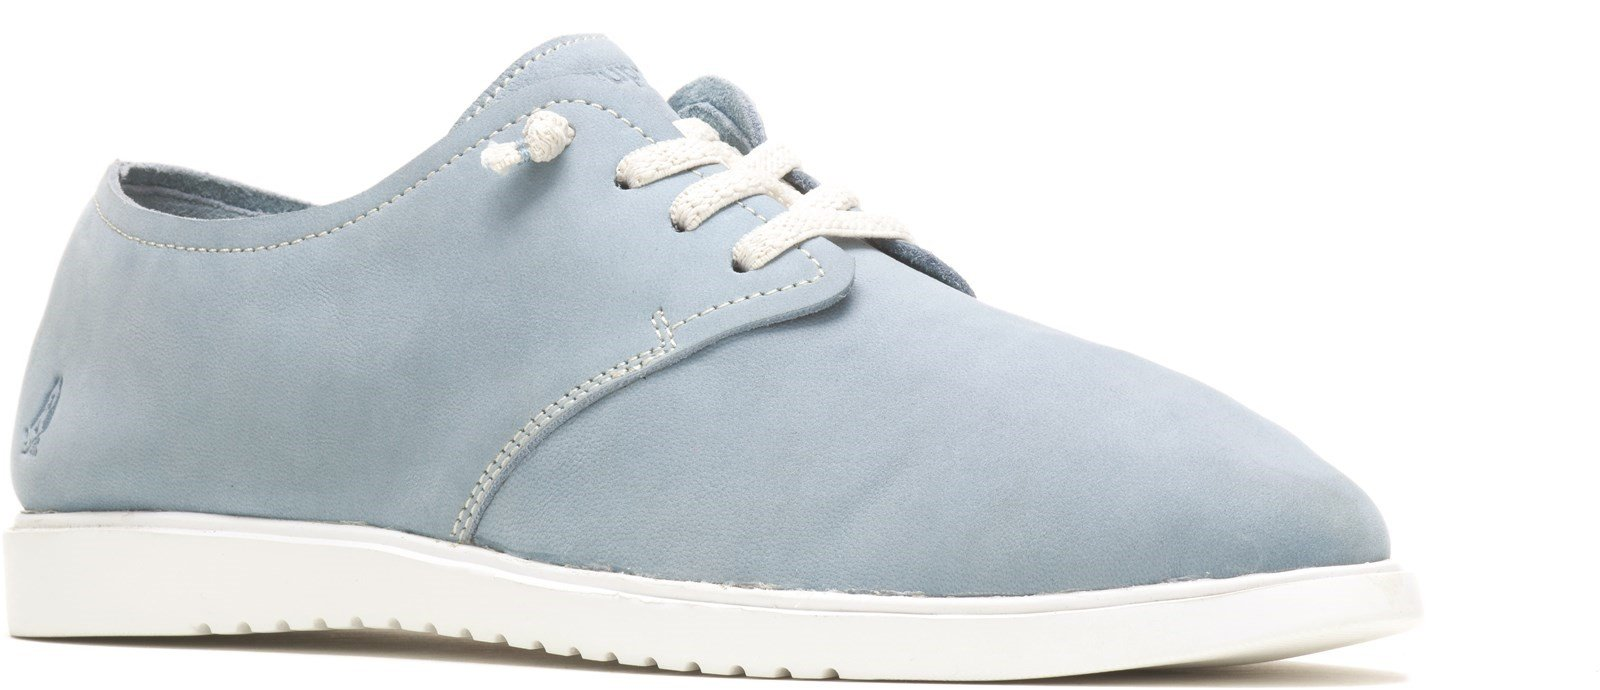 Hush Puppies Women's Everyday Lace Trainer Various Colours 31943 - Blue 8